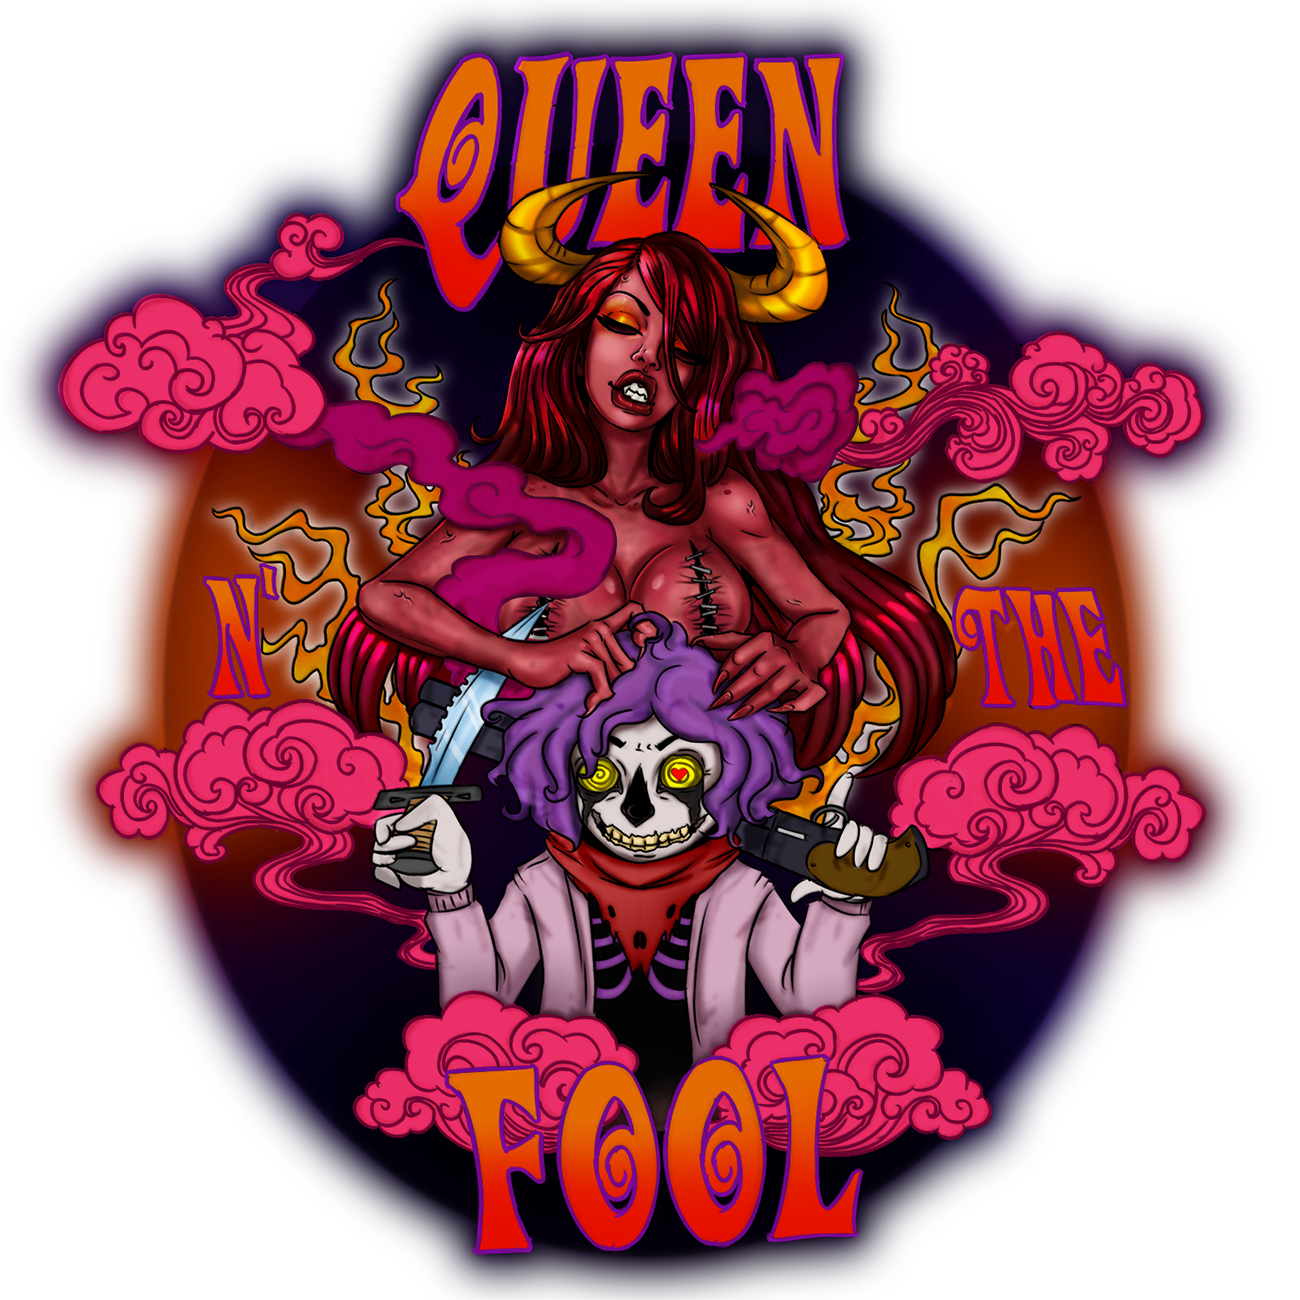 Queen and the Fool